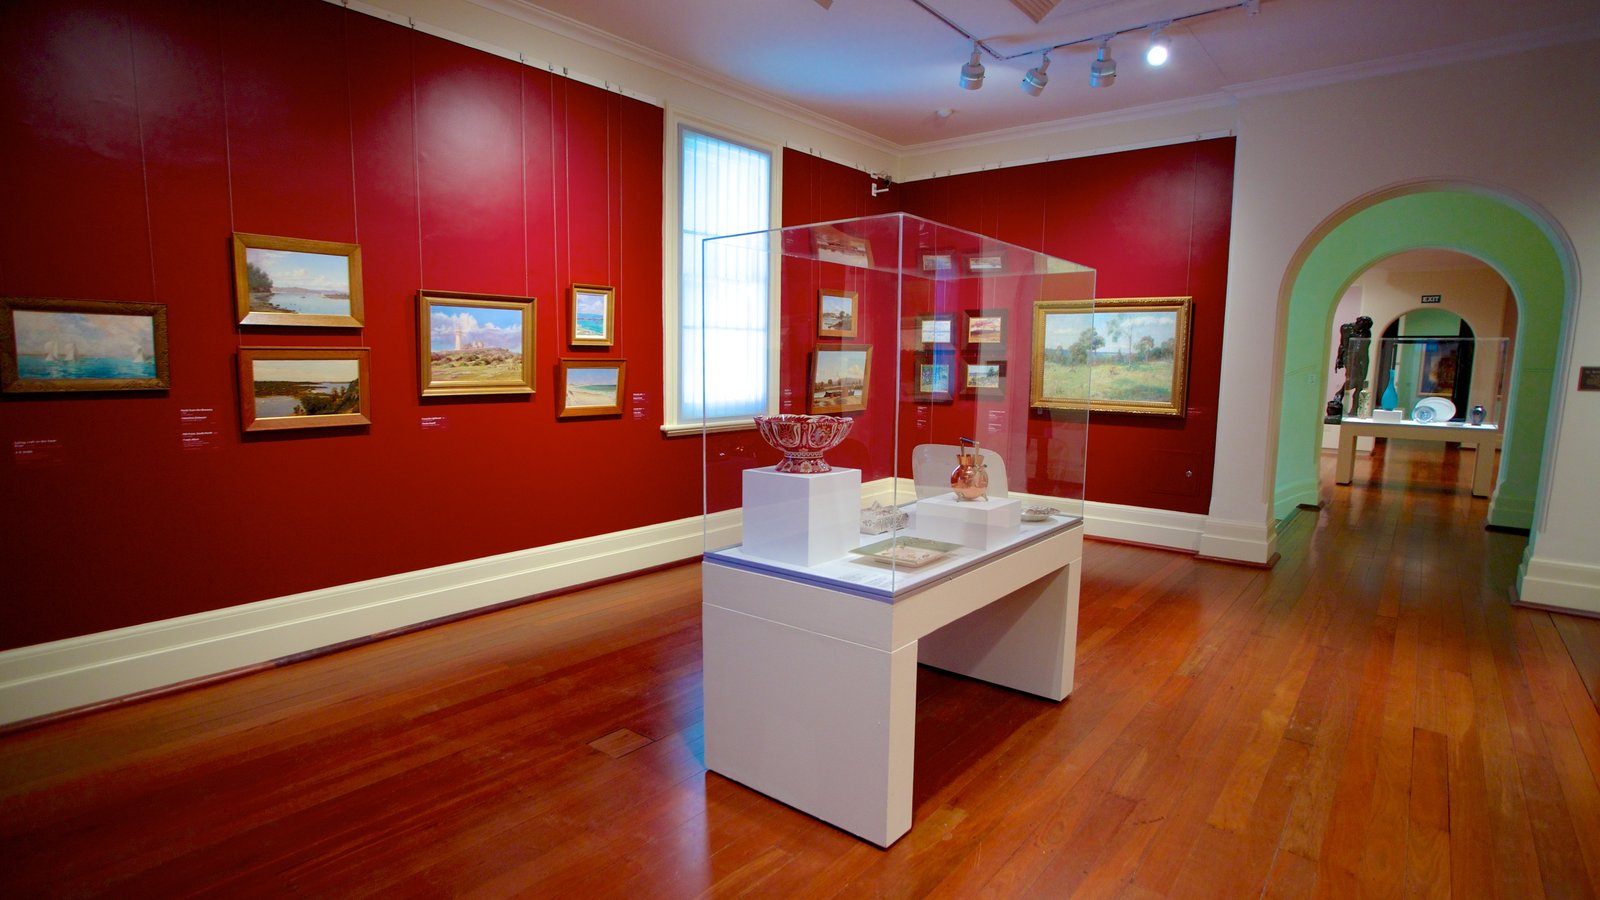 Art Gallery of Western Australia which includes interior views and art